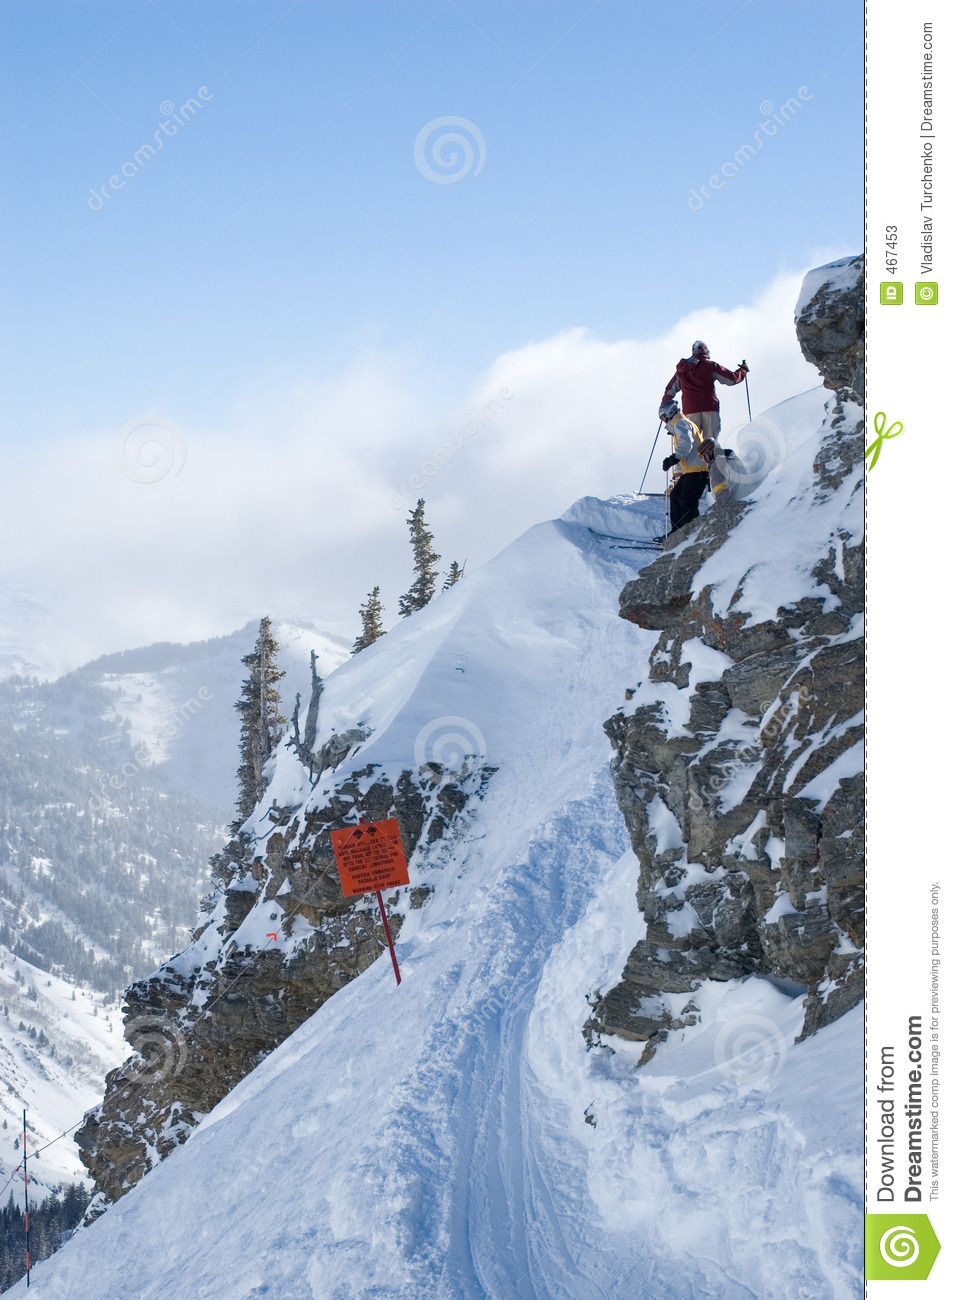 Download Backcountry Skiing Trail Access Stock Image - Image of sport, diamond: 467453